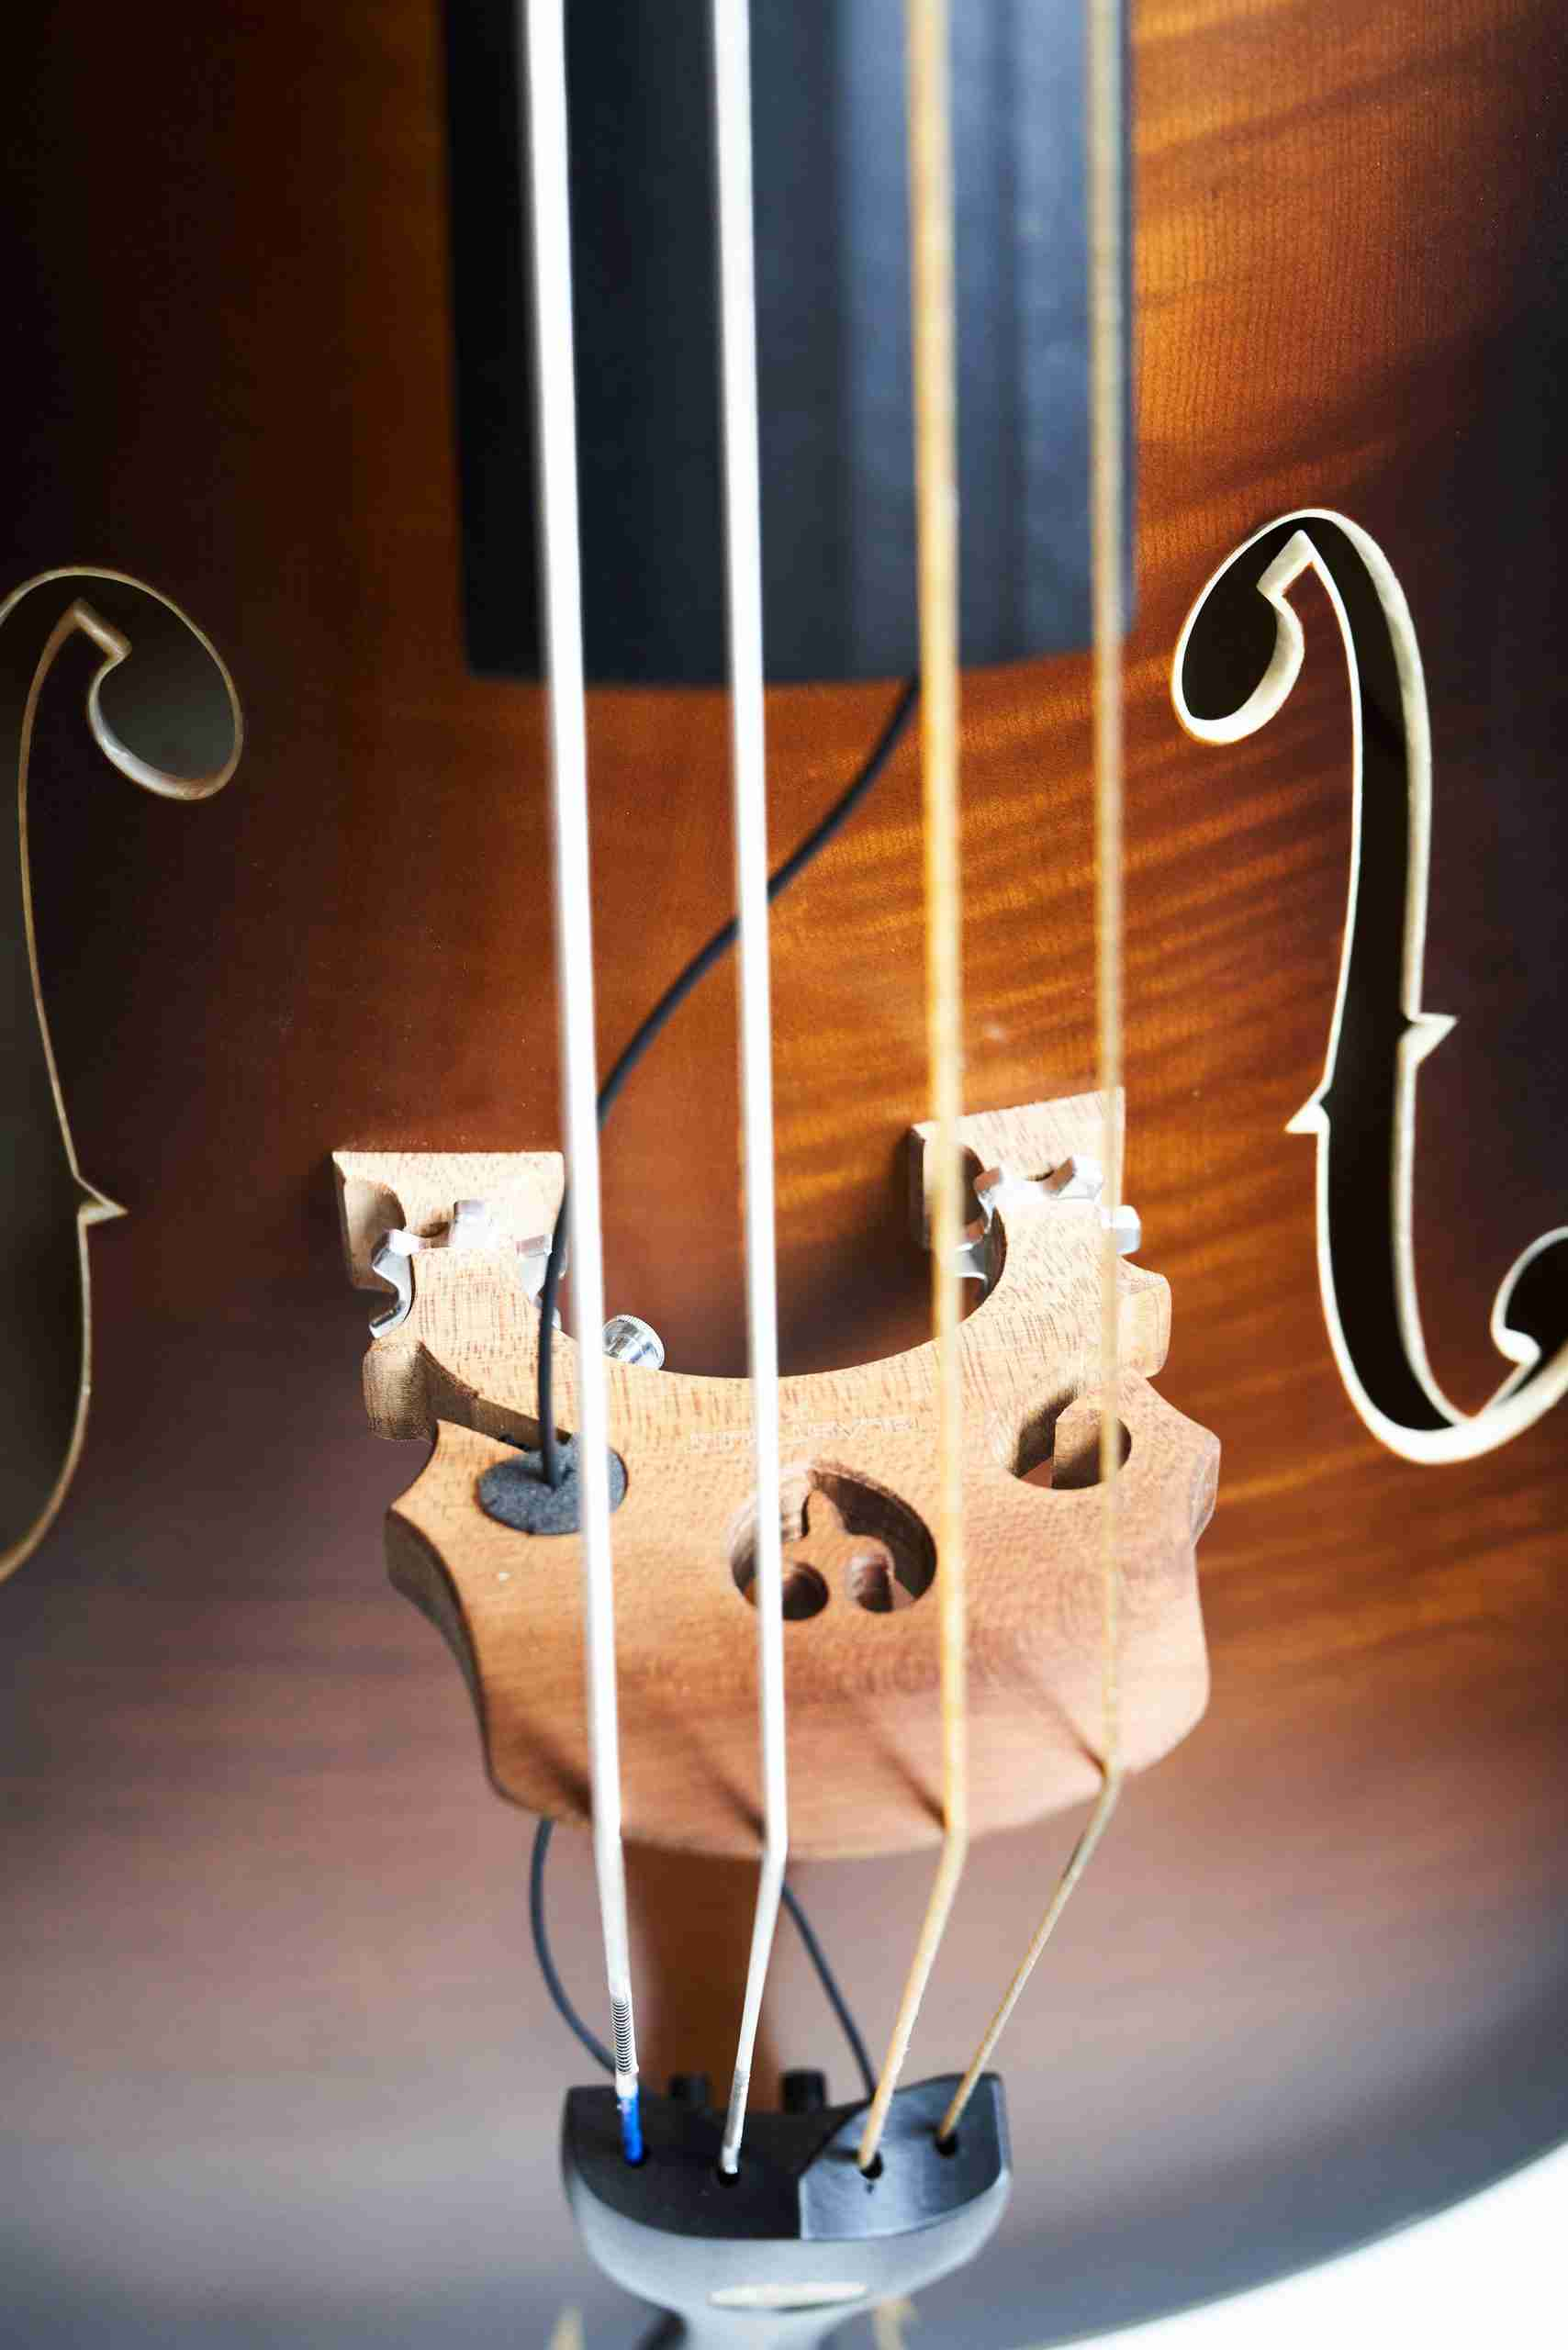 Double Bass Accessories